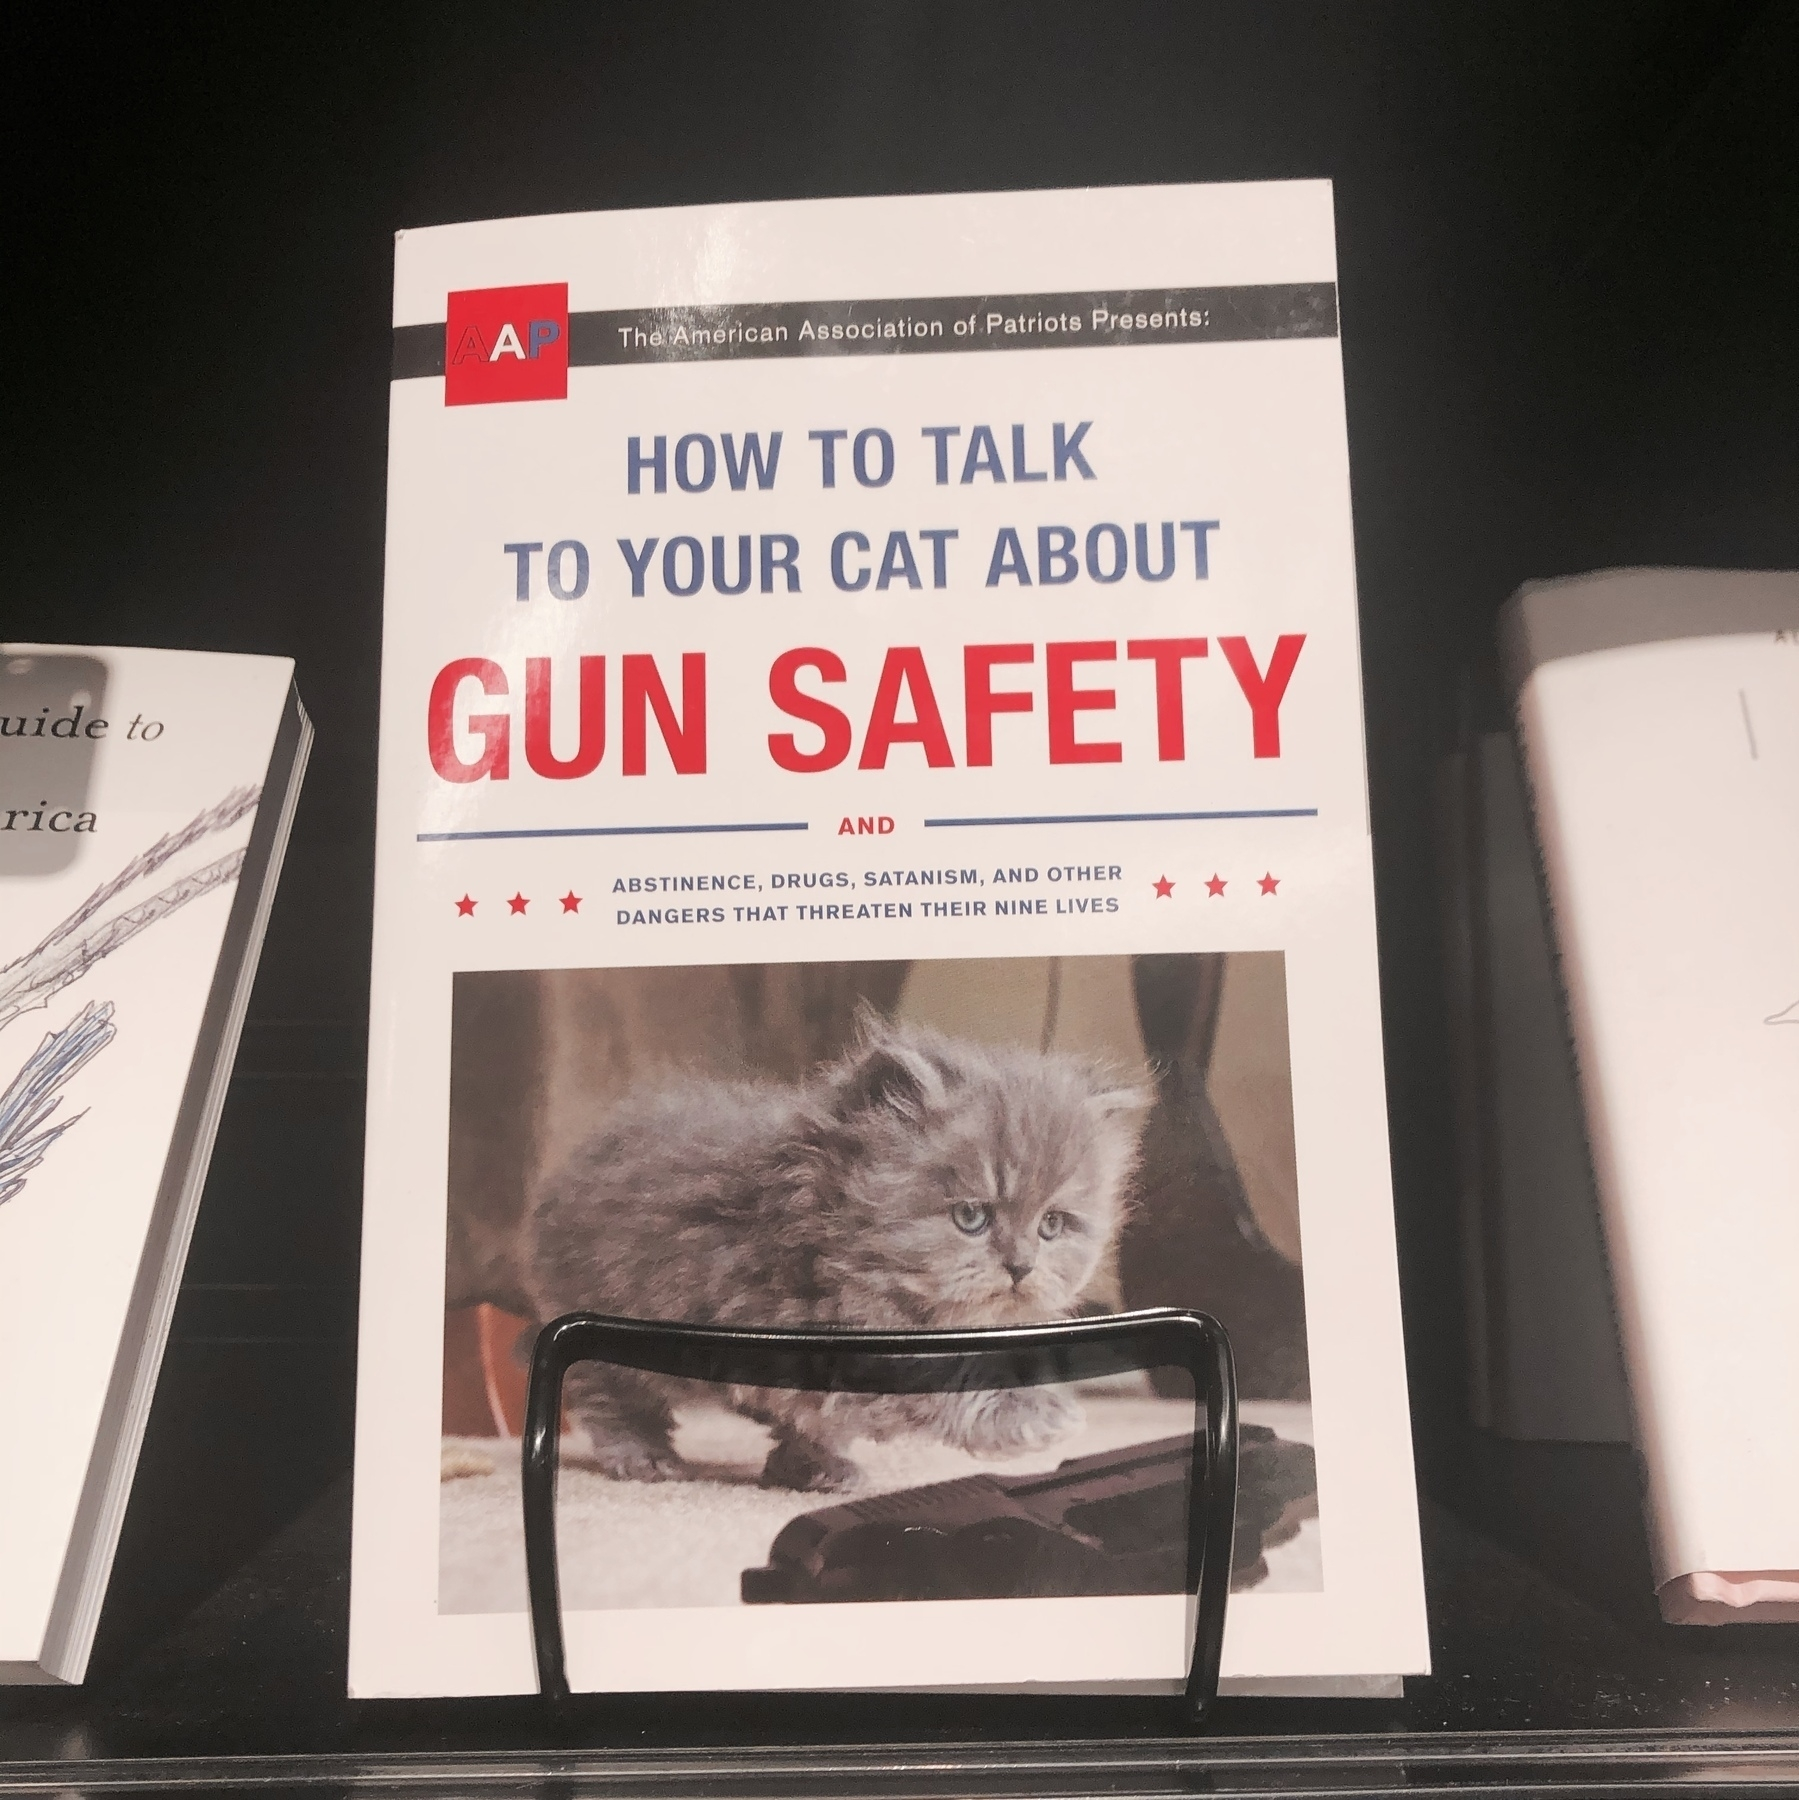 A book called how to talk to your cat about gun safety.